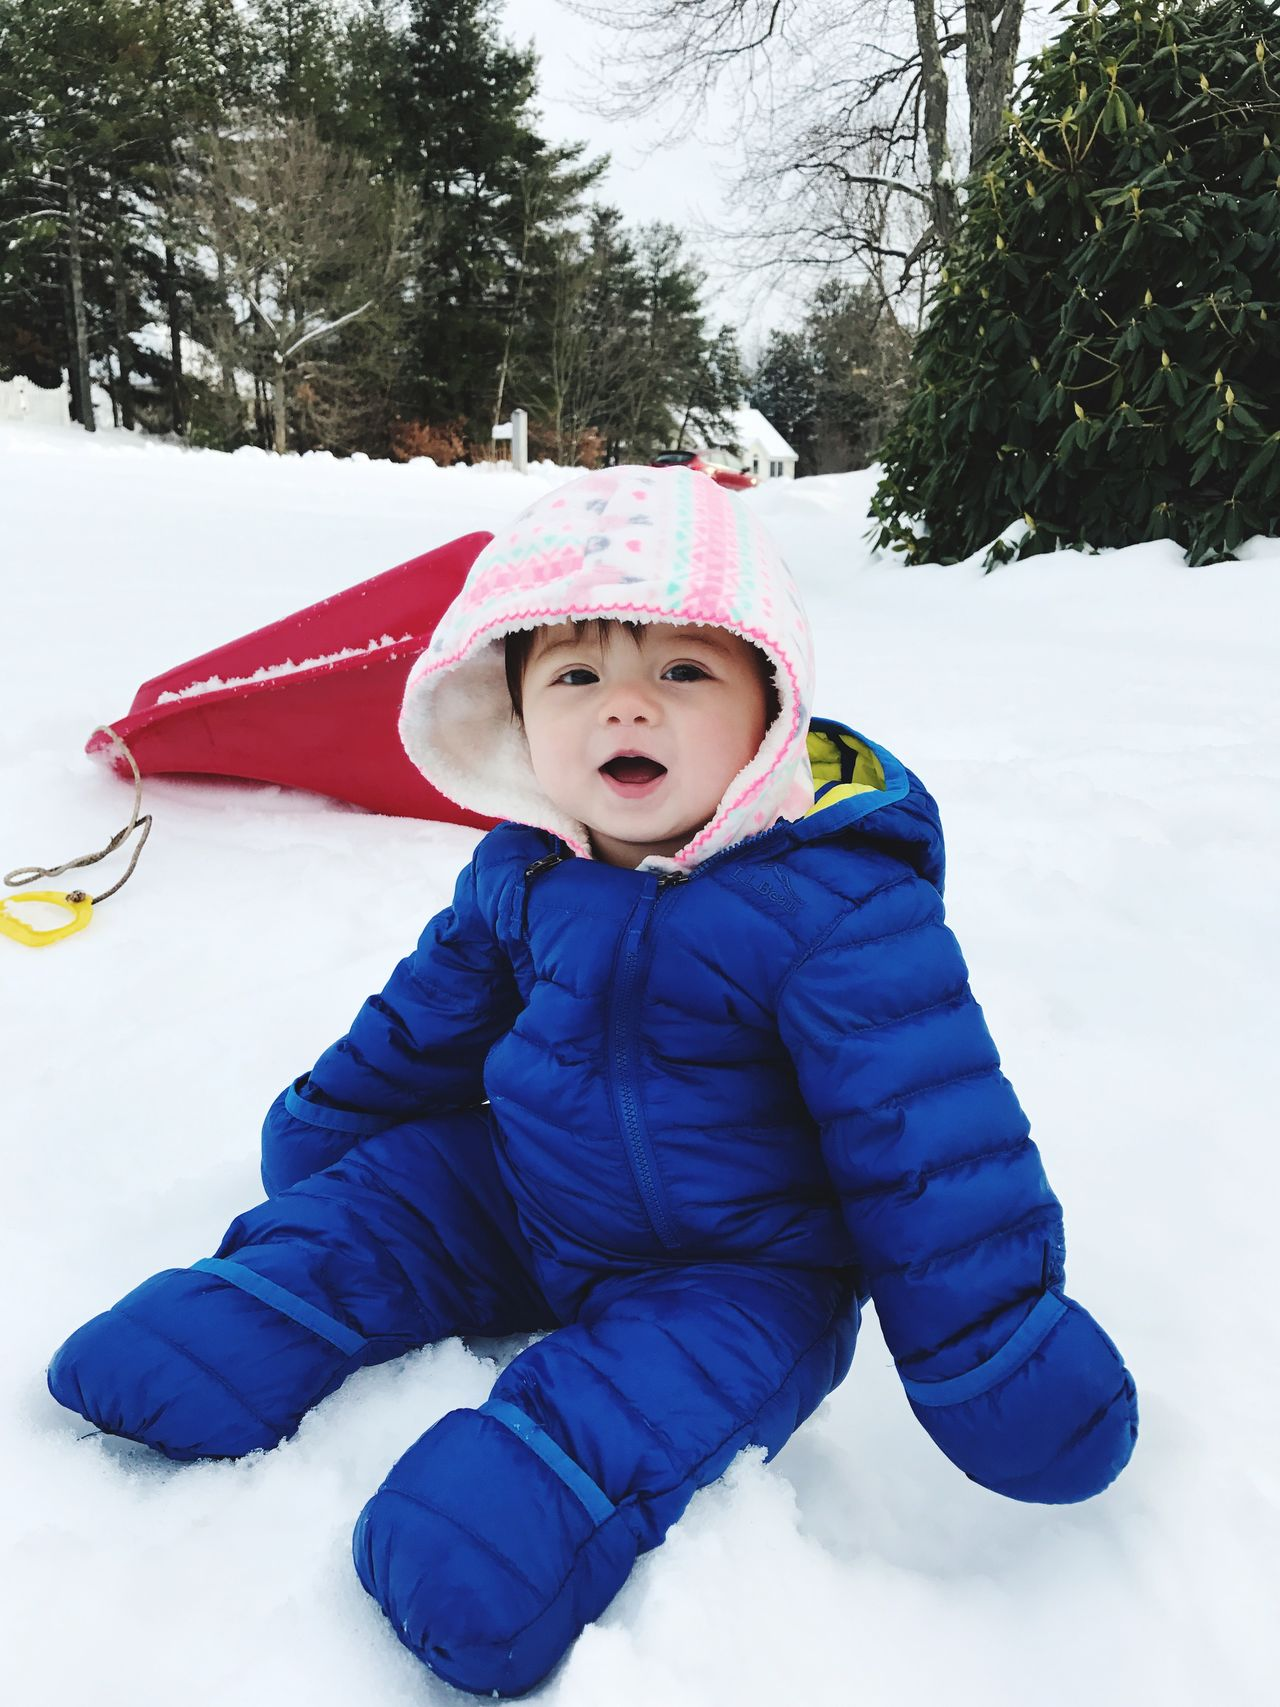 Snow Sports babies first snow day . First time sledding. Snow Winter Happiness Child Cold Temperature Sledding Snow ❄ Snow Day